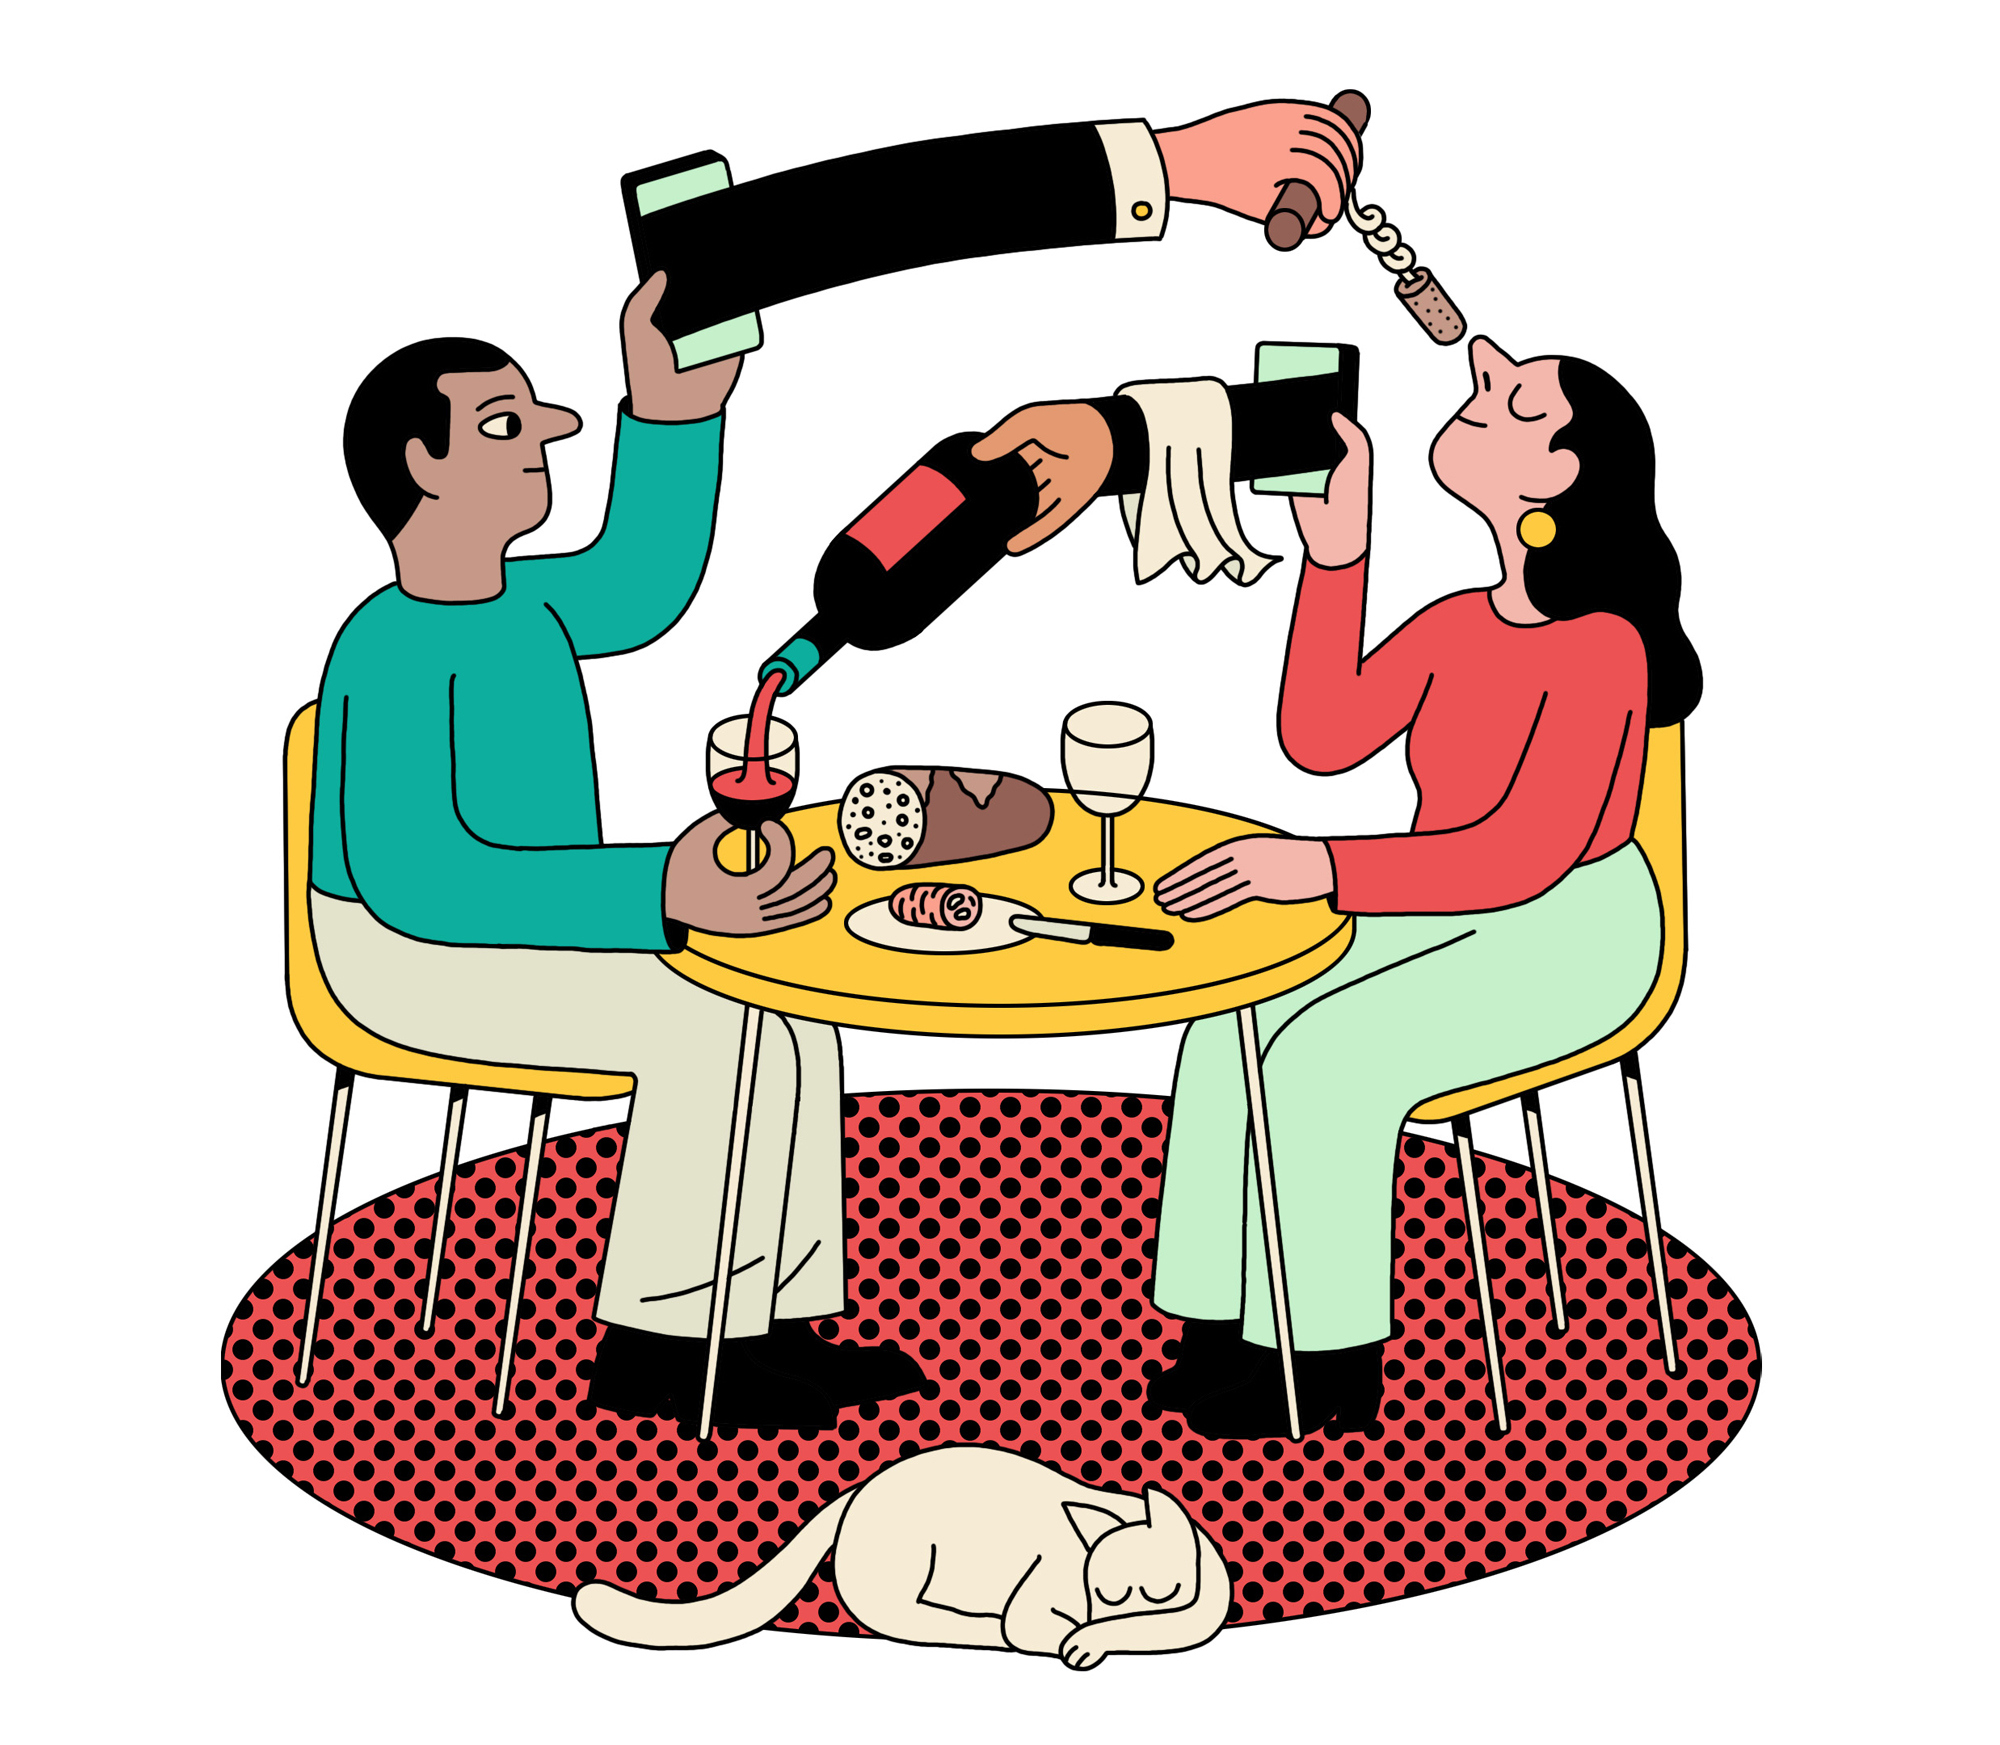 illustration of arms with bottle of wine coming out of cell phones